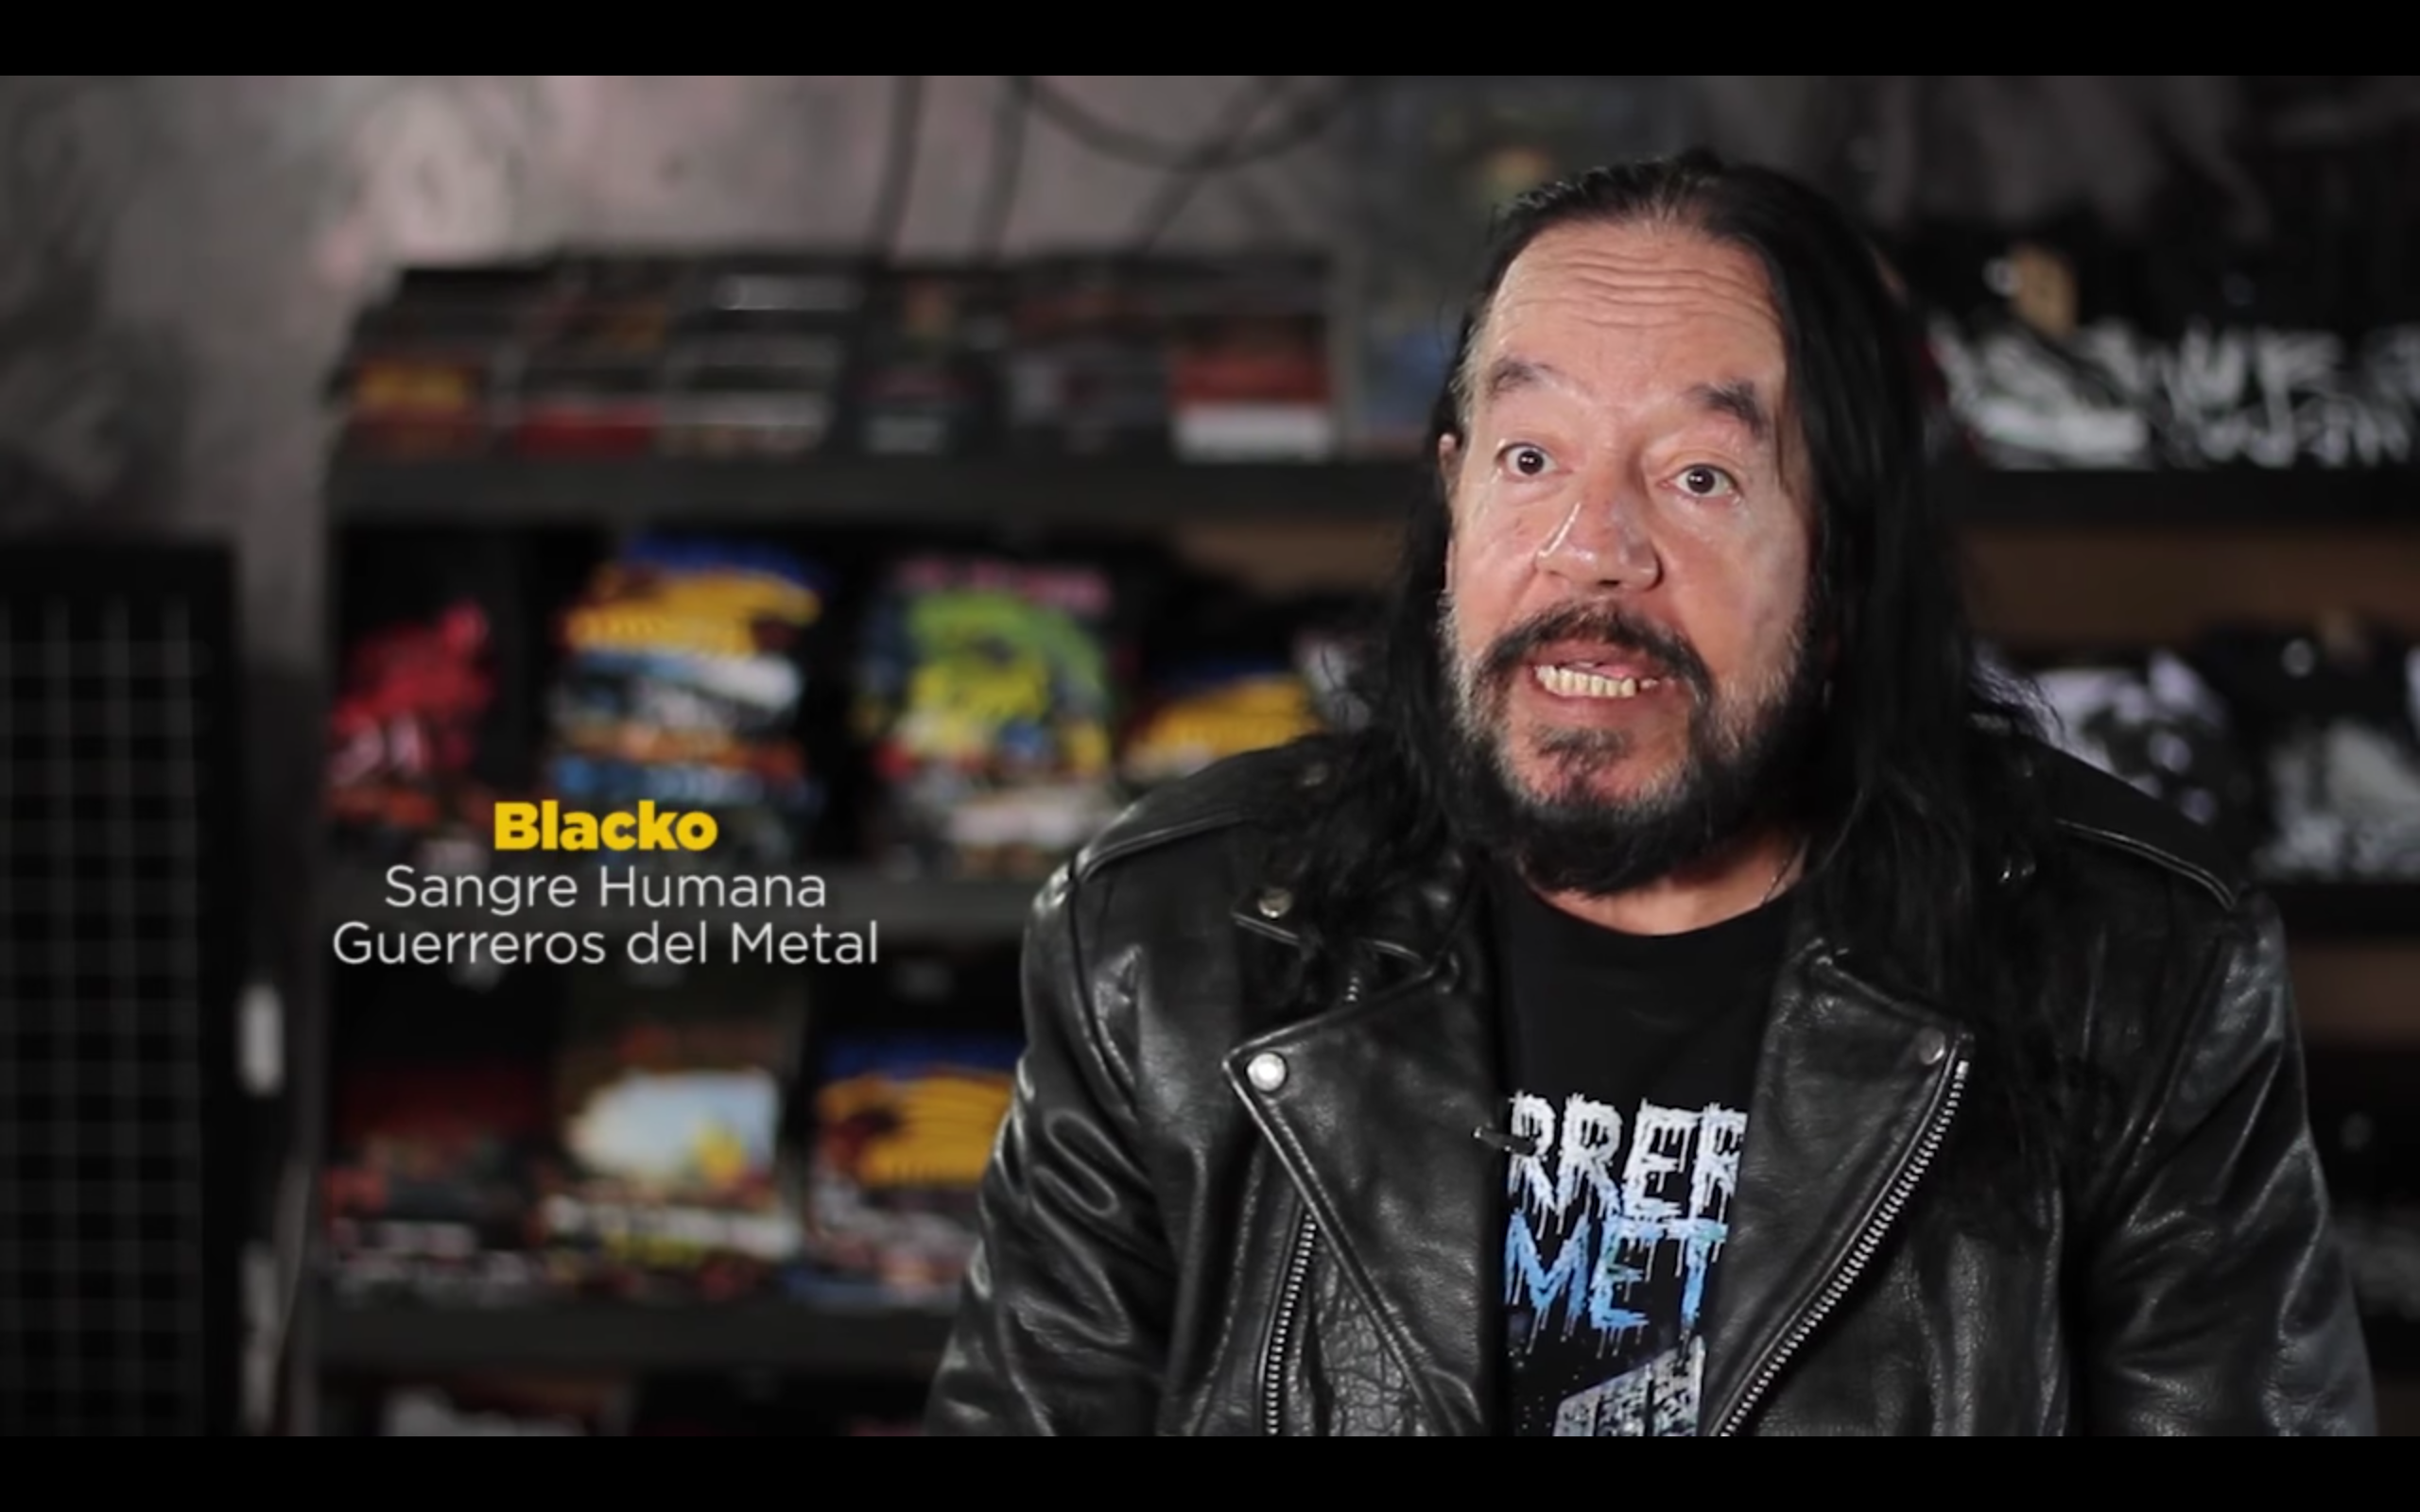 Blacko, guerrero del metal, documental, heavy metal, guatemala